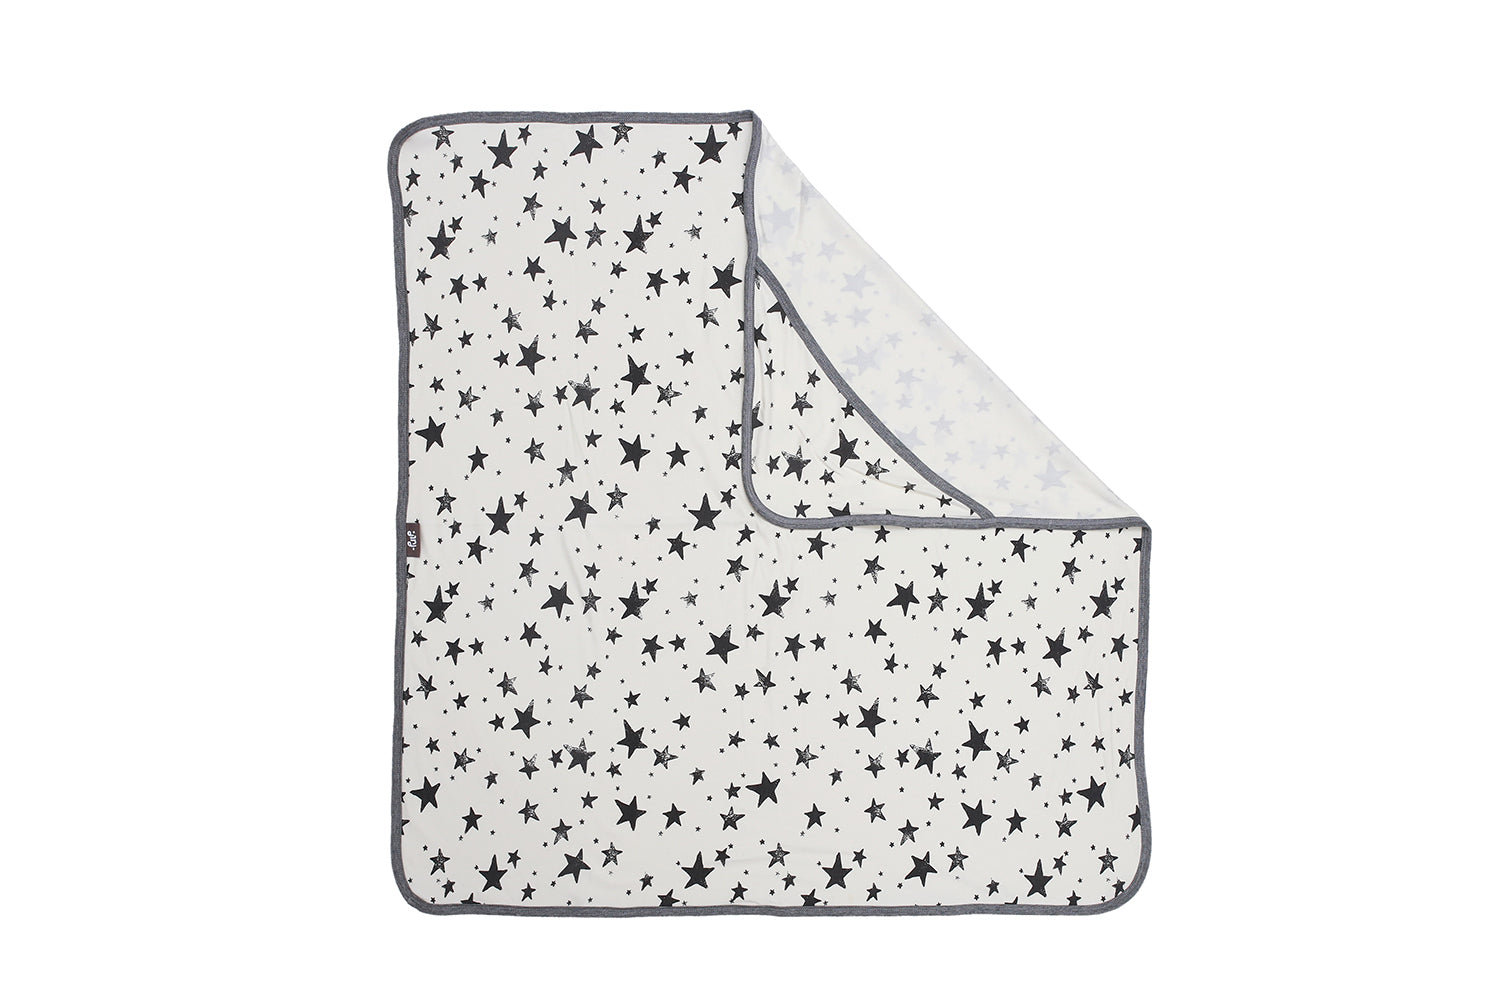 PULP - Bamboo Hooded Swaddle Blanket / Towel Stars - Blankets - Bambinista